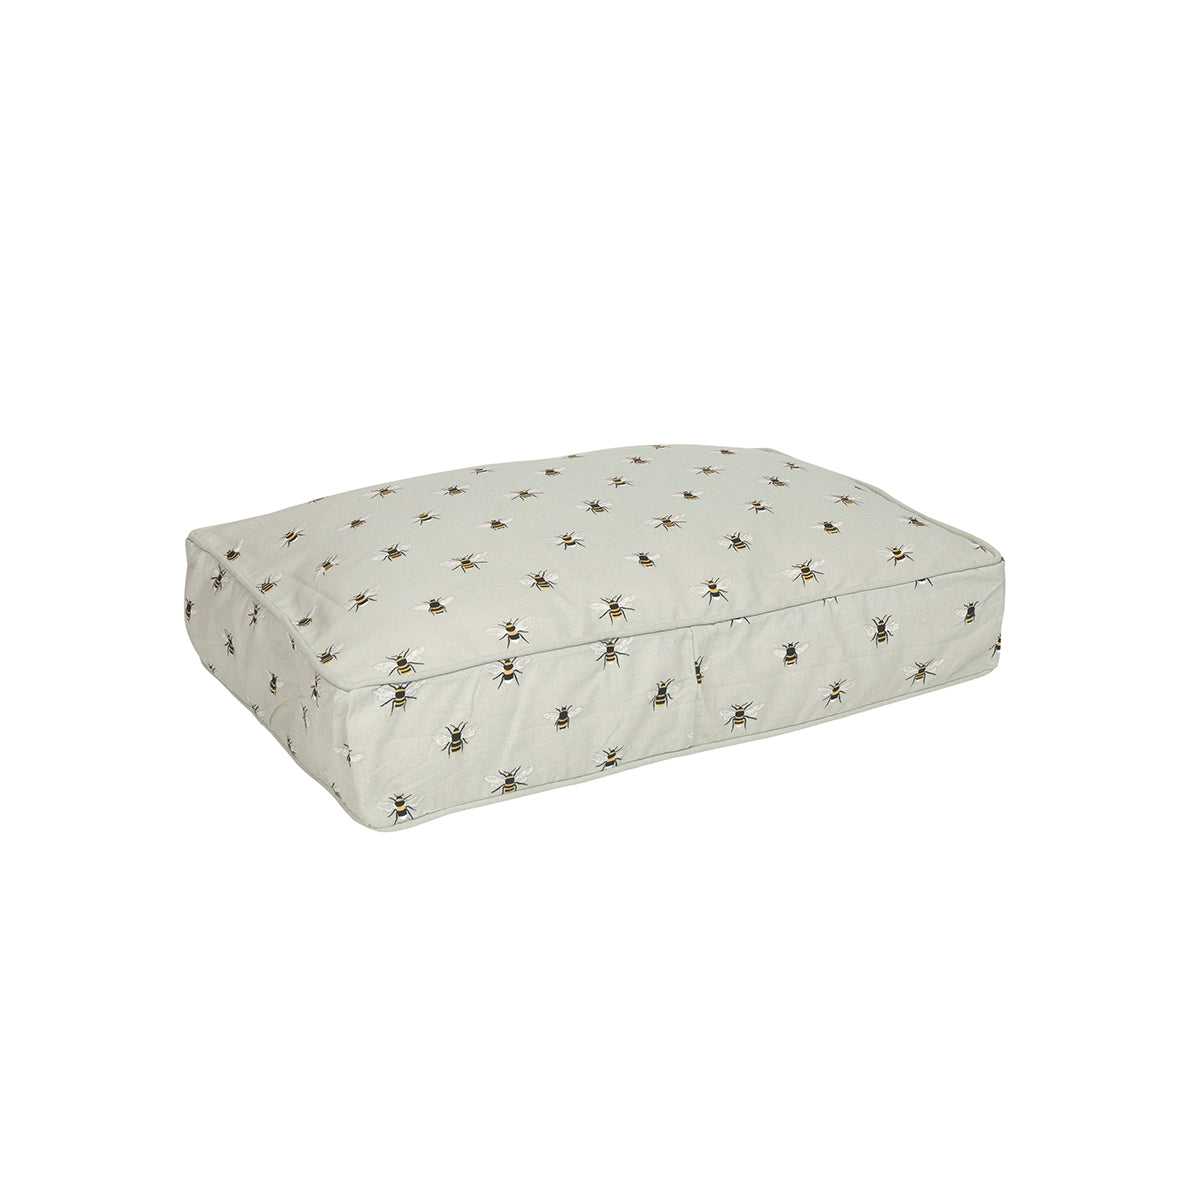 Dog mattress in Sophie Allport's bee design on a pale green background, available in three sizes.